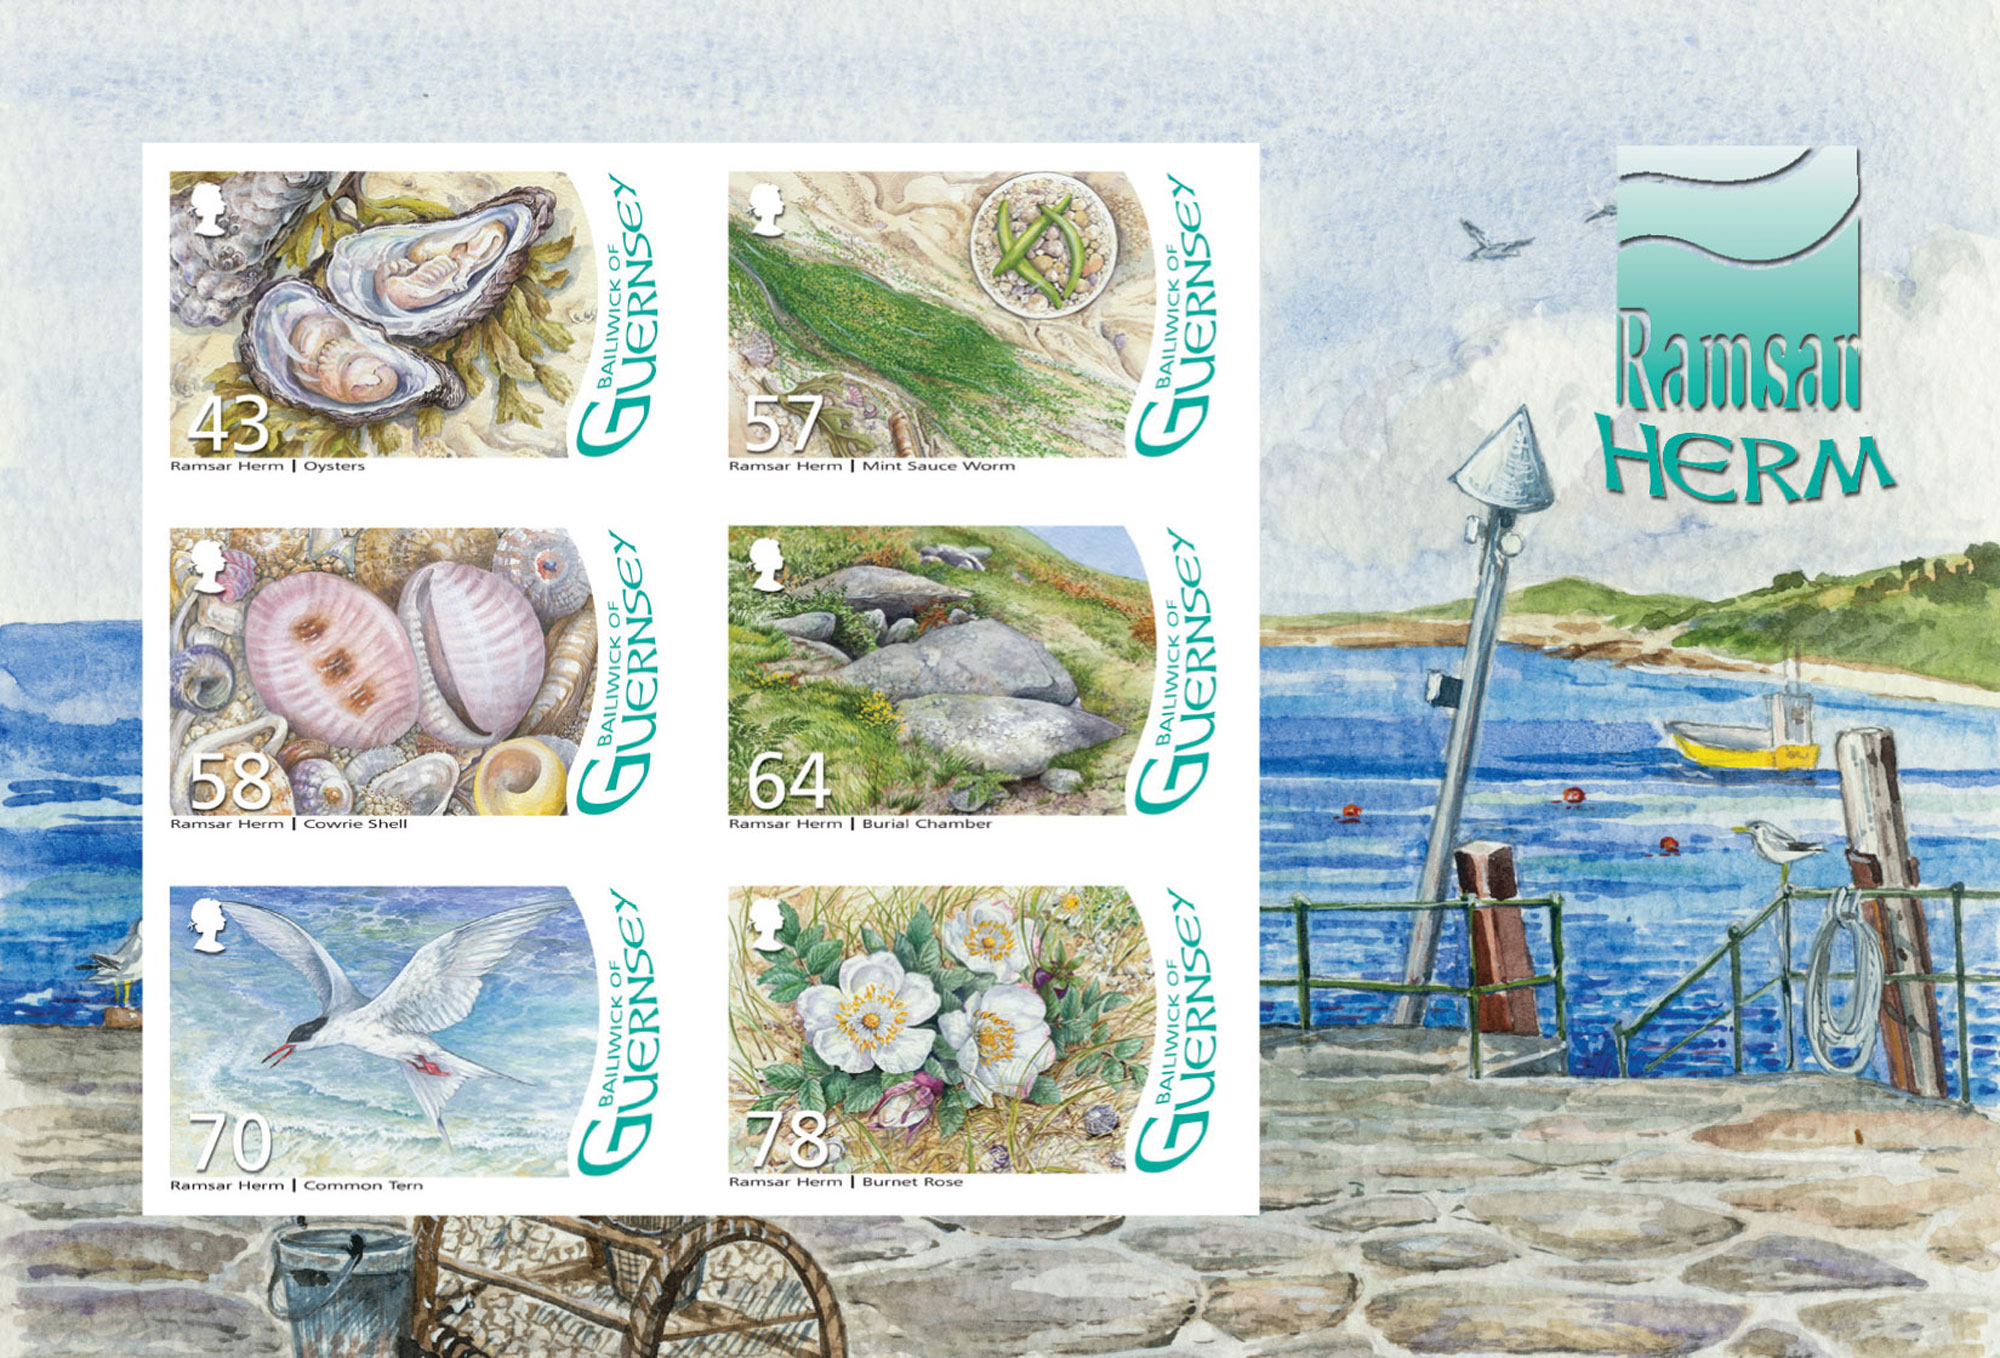 Augmented Reality stamps mark formal designation of Herm, Jethou and The Humps